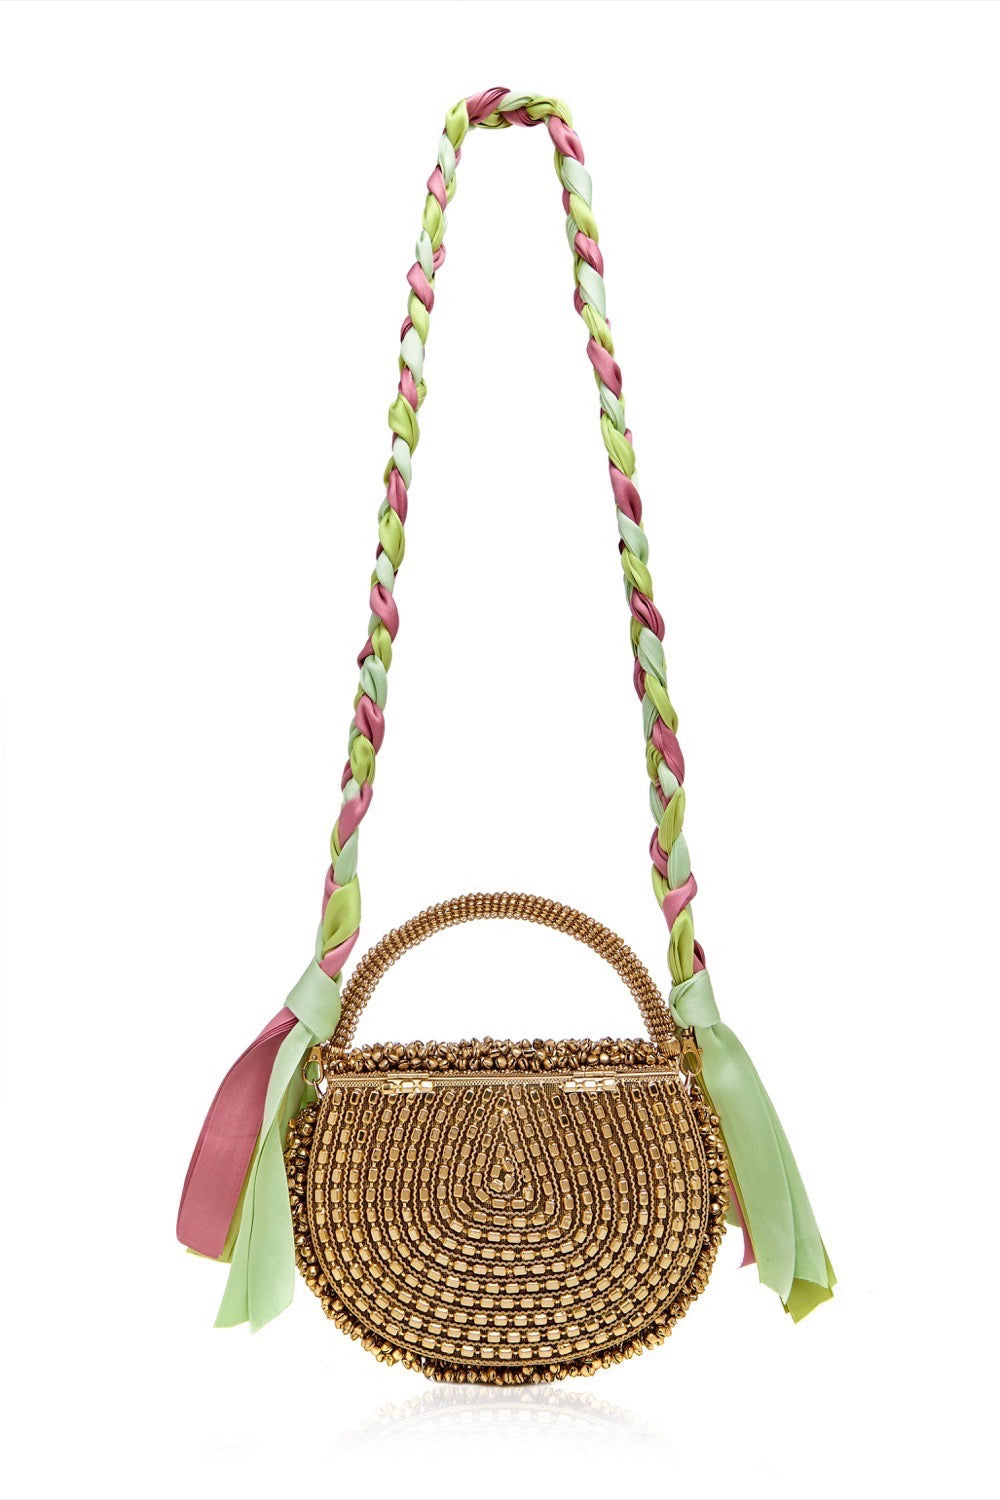 Mae Cassidy Malini Dream Gold Pastel Ribbon Plaited Handbag.